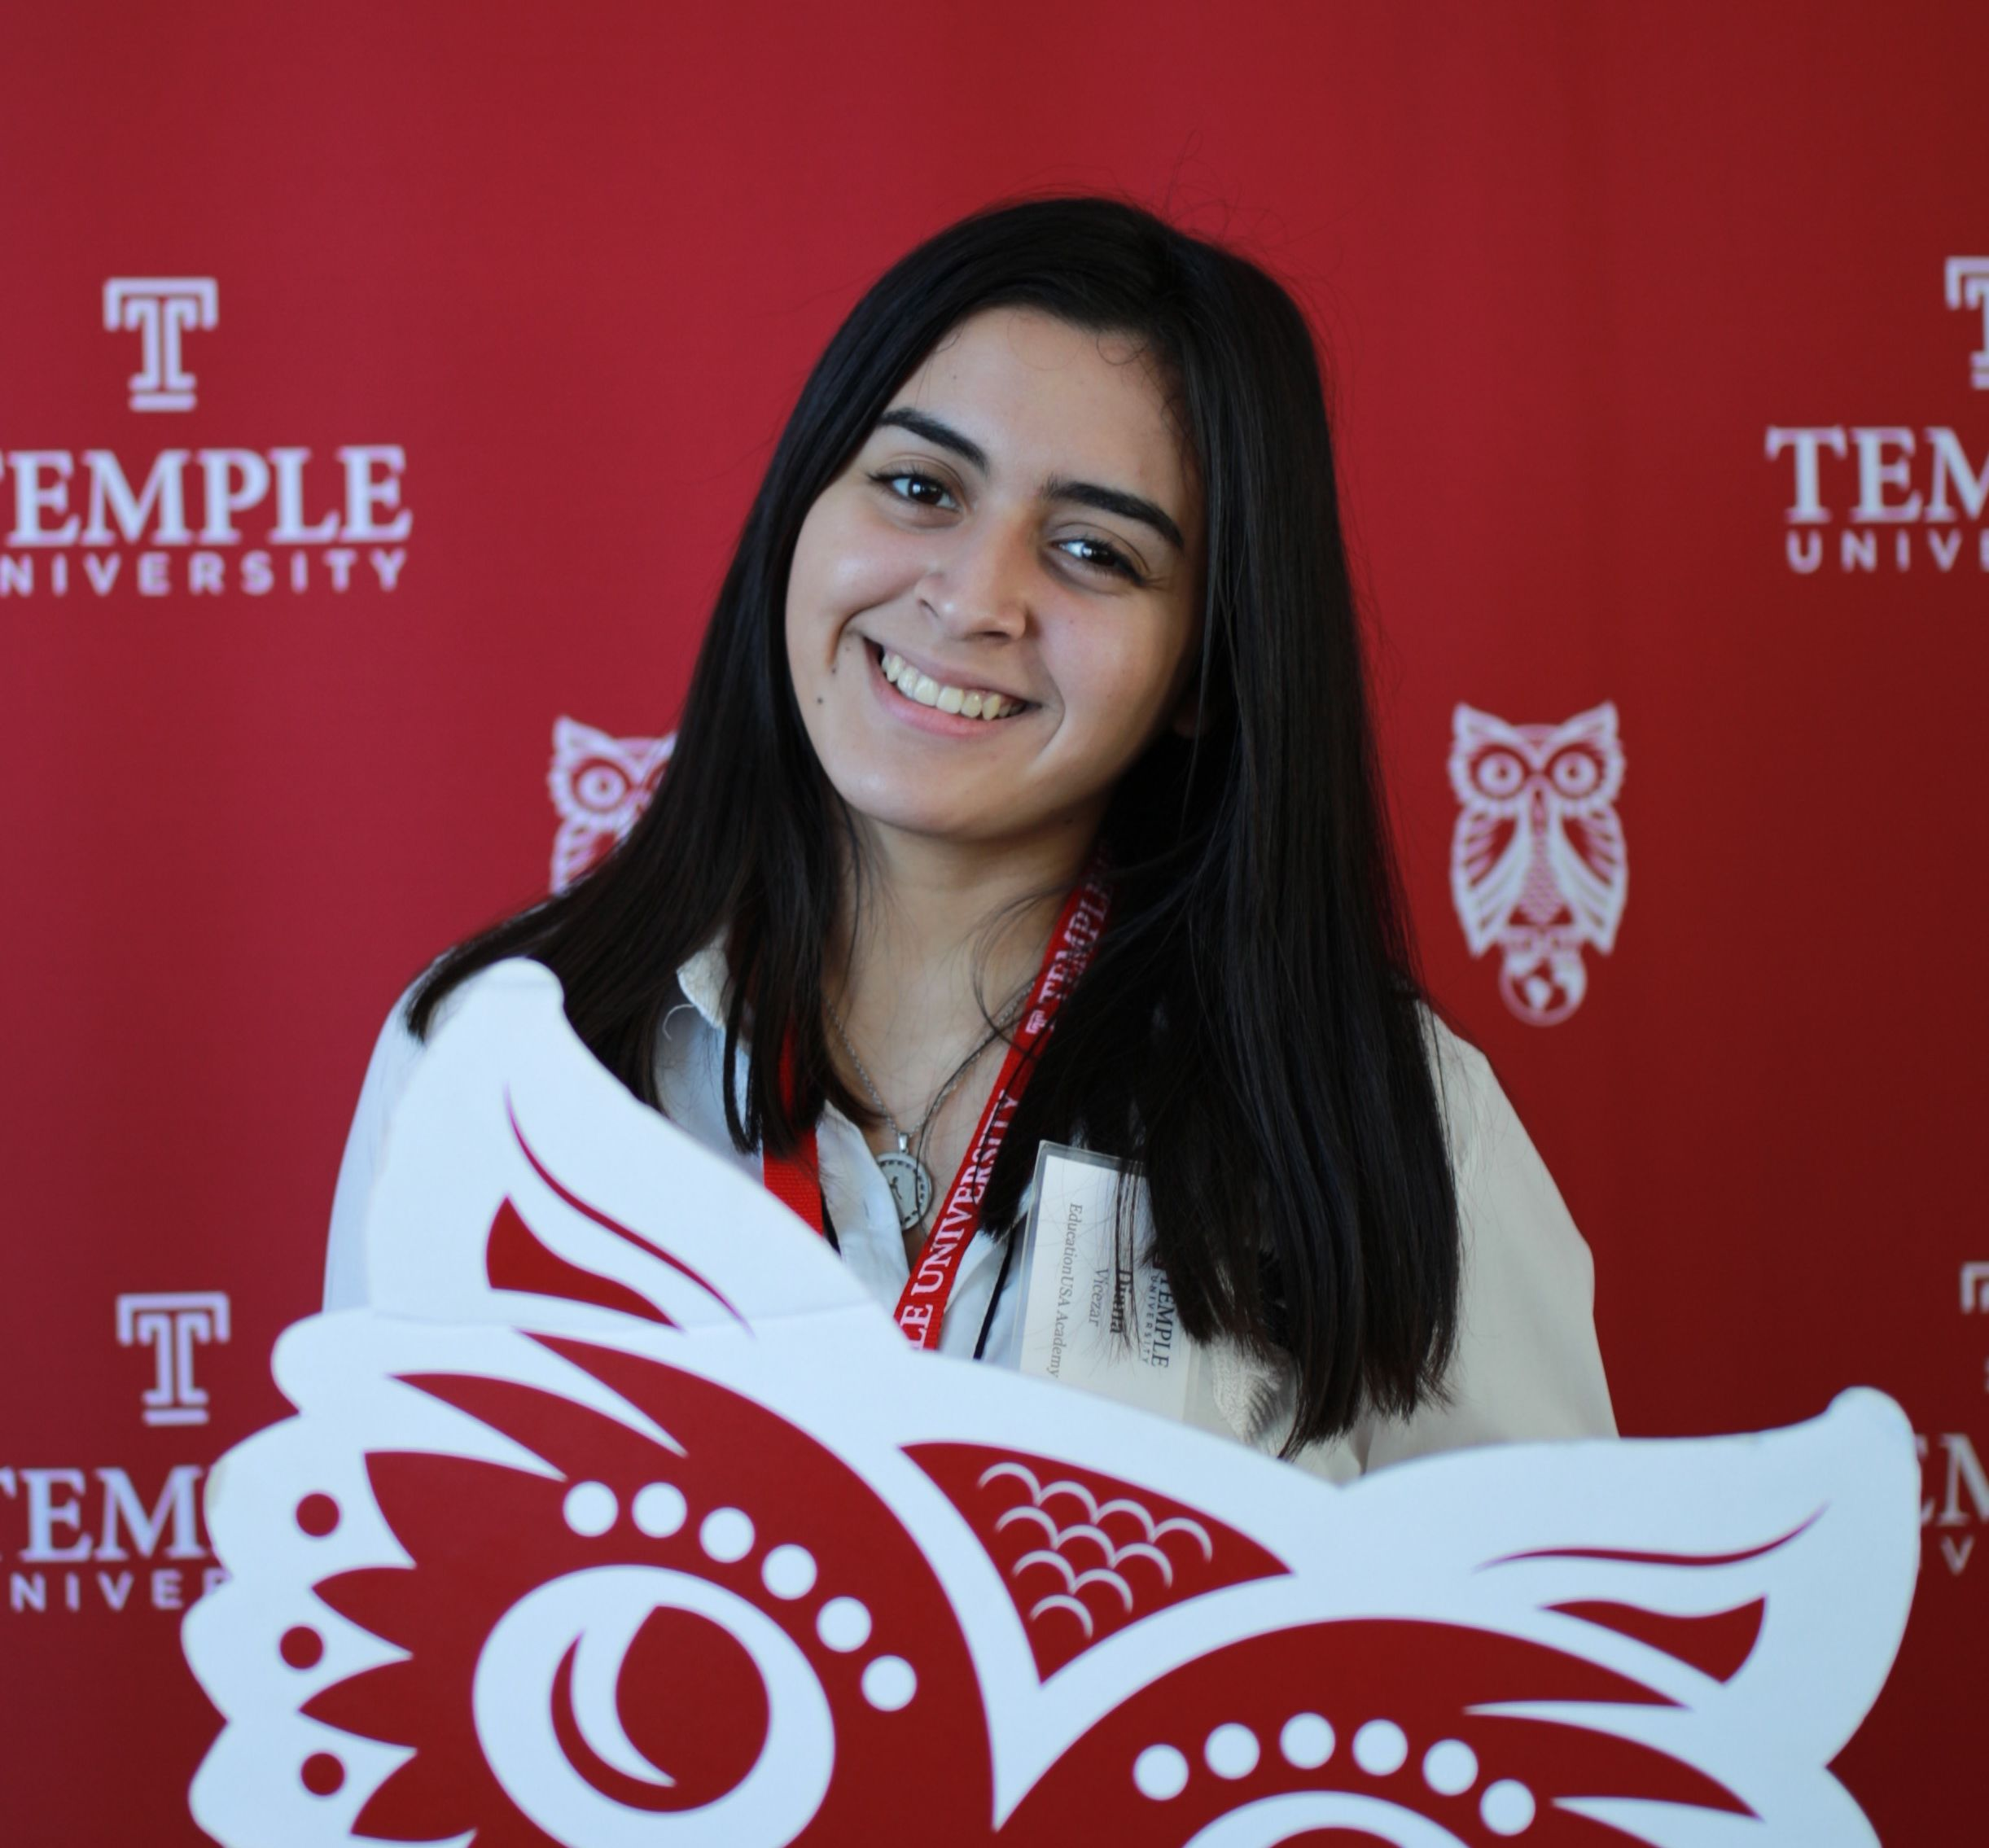 Diana Vicezar, an EducationUSA Academy student, holding an owl cutout and smiling